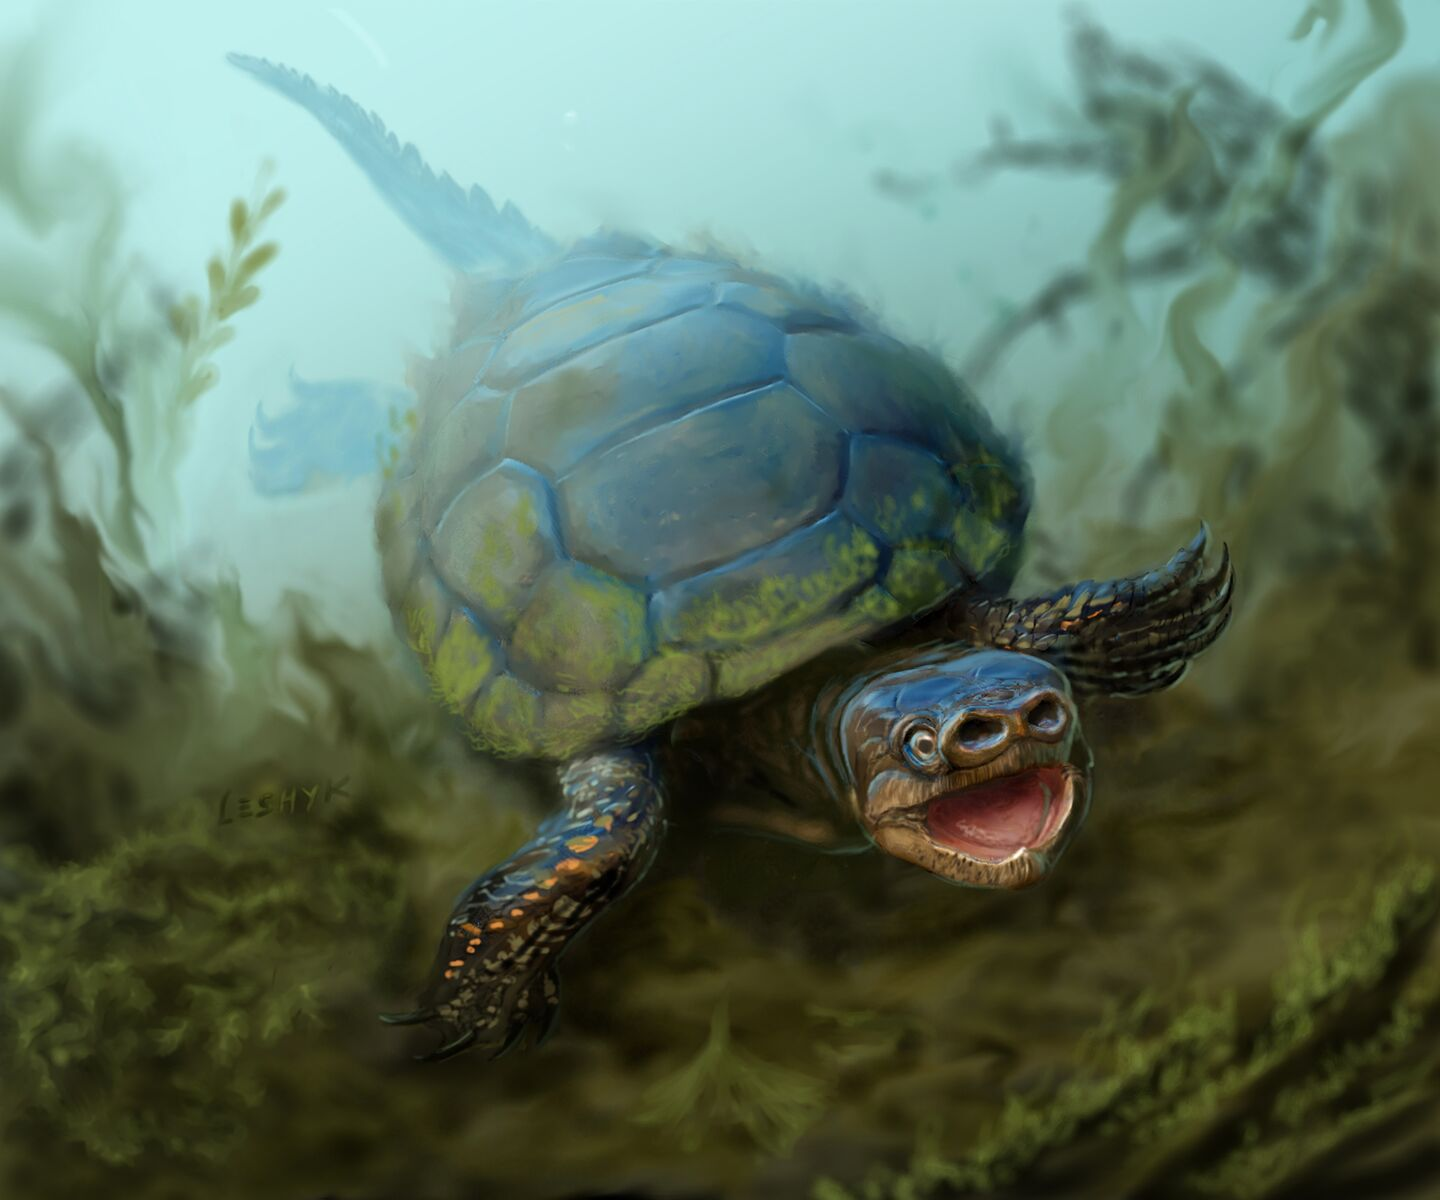 76-million-year-old Extinct Species Of Pig-snouted Turtle